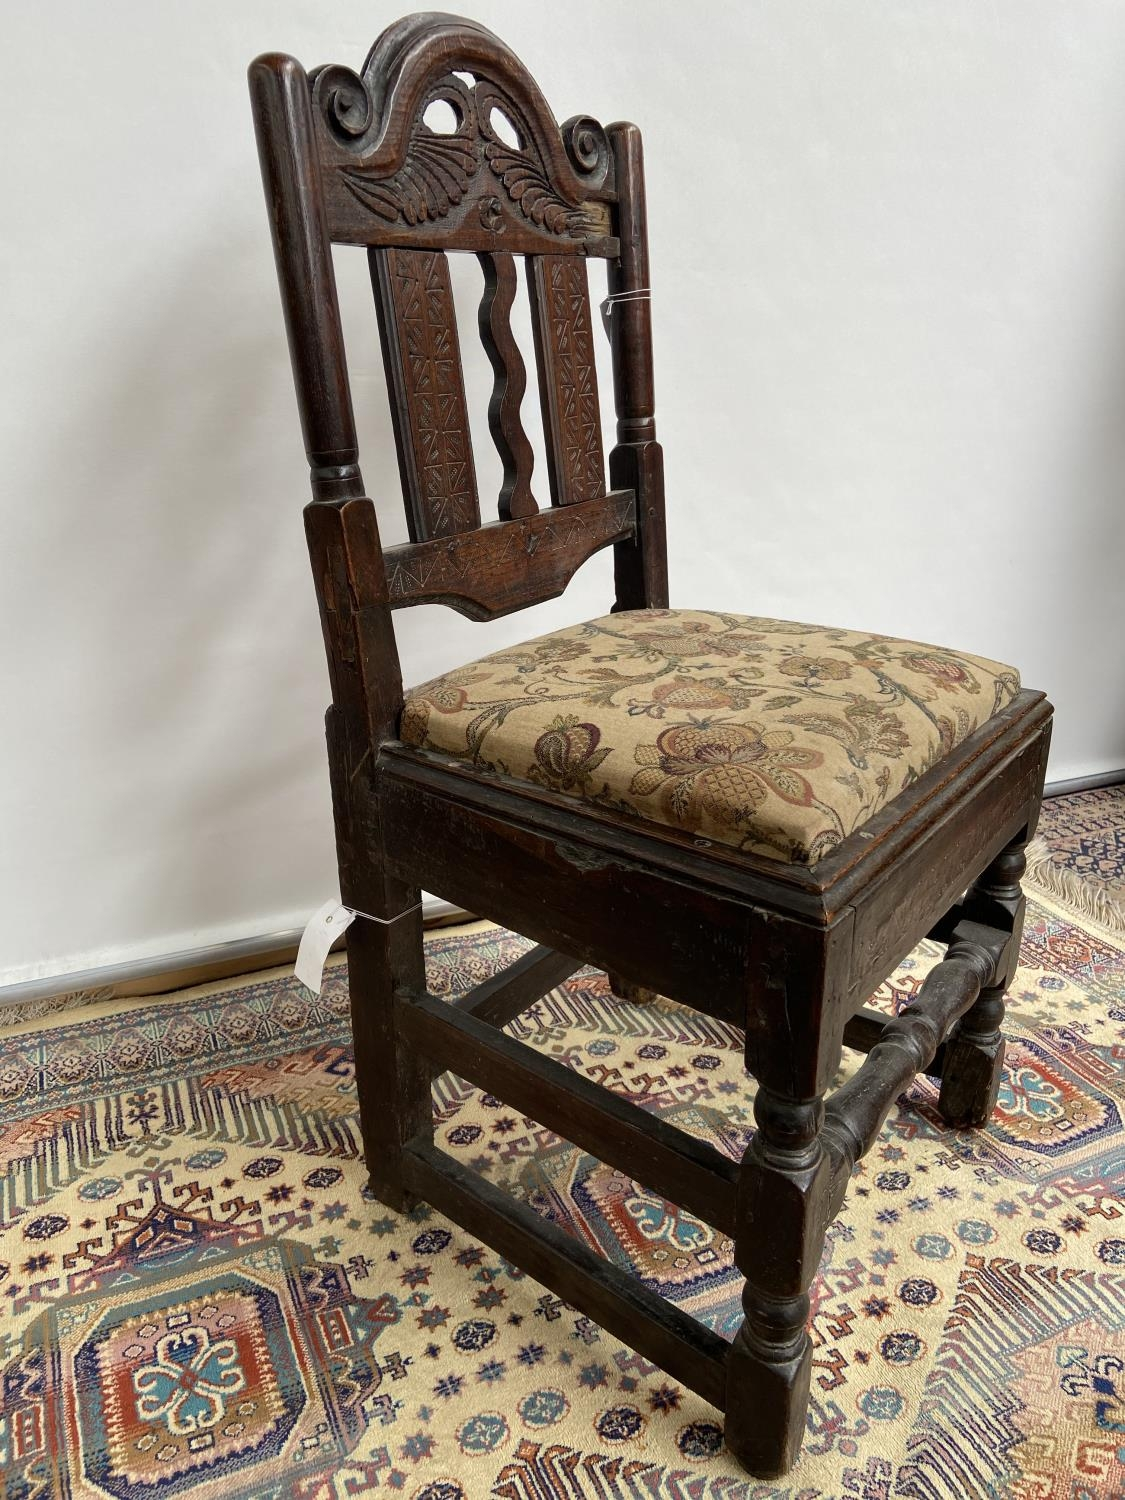 French carved walnut side chair [early 18th century] with a scroll-carved top rail above carved wavy - Image 2 of 6